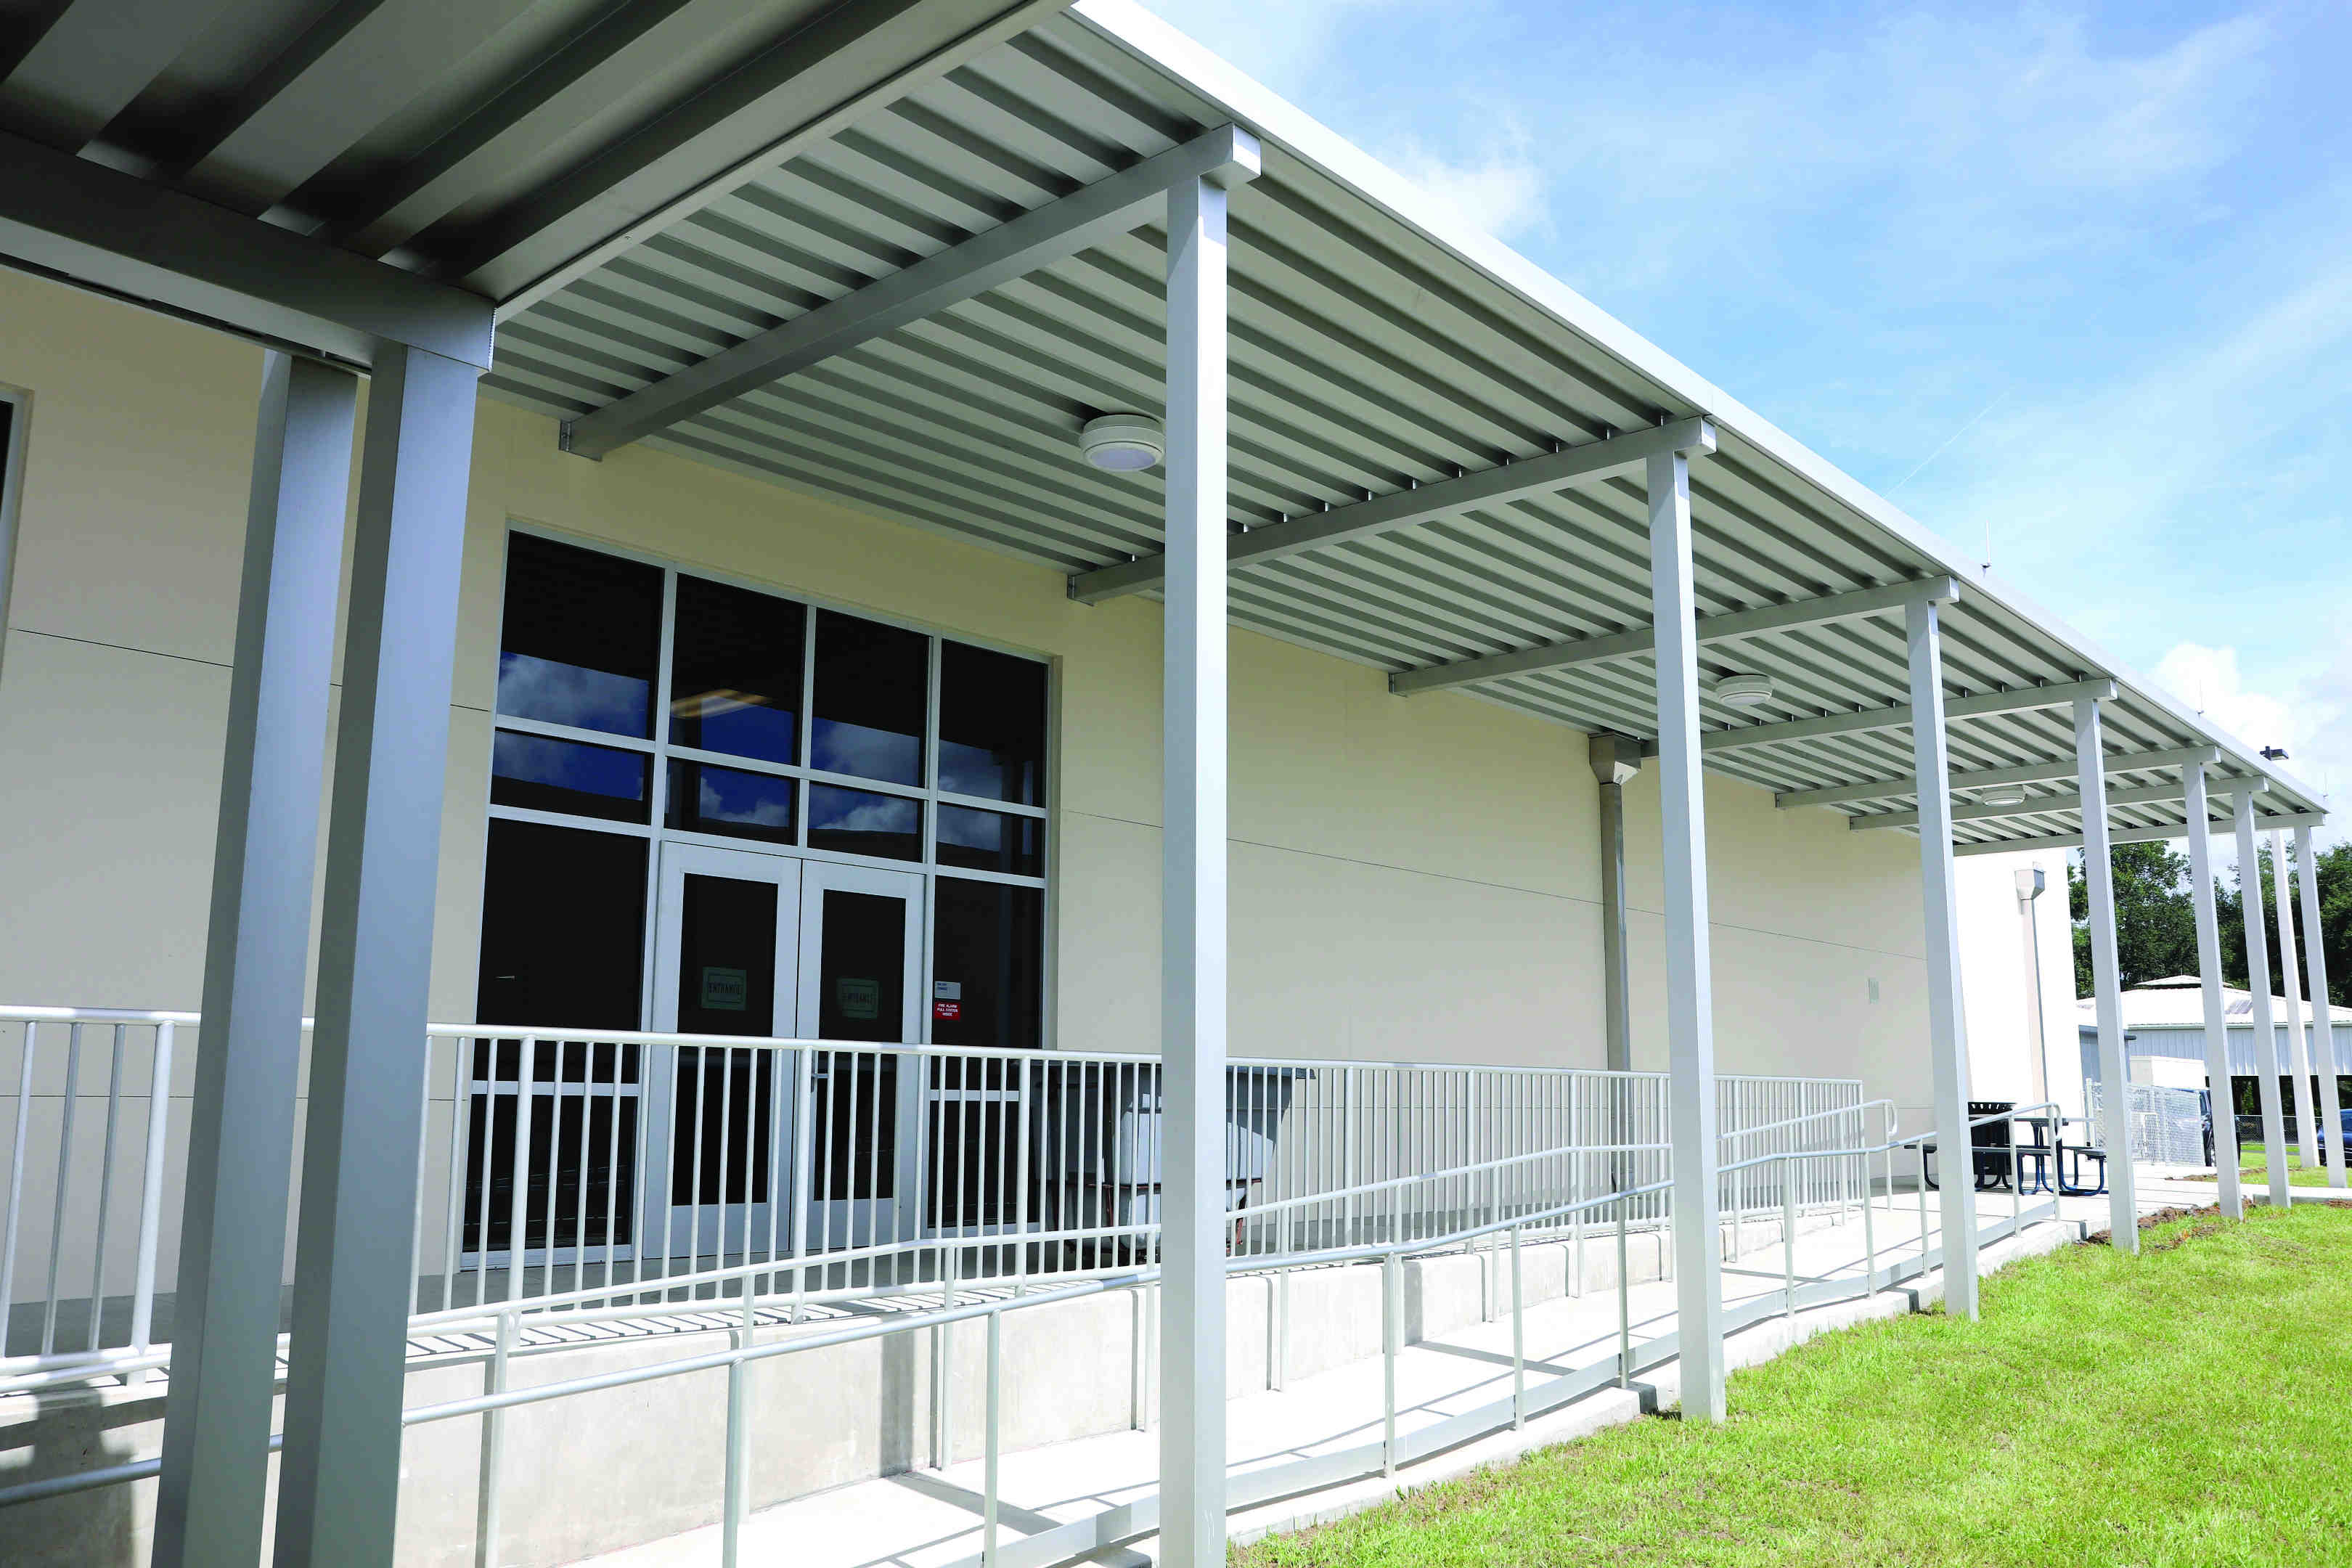 Woodland Elementary School gets new look